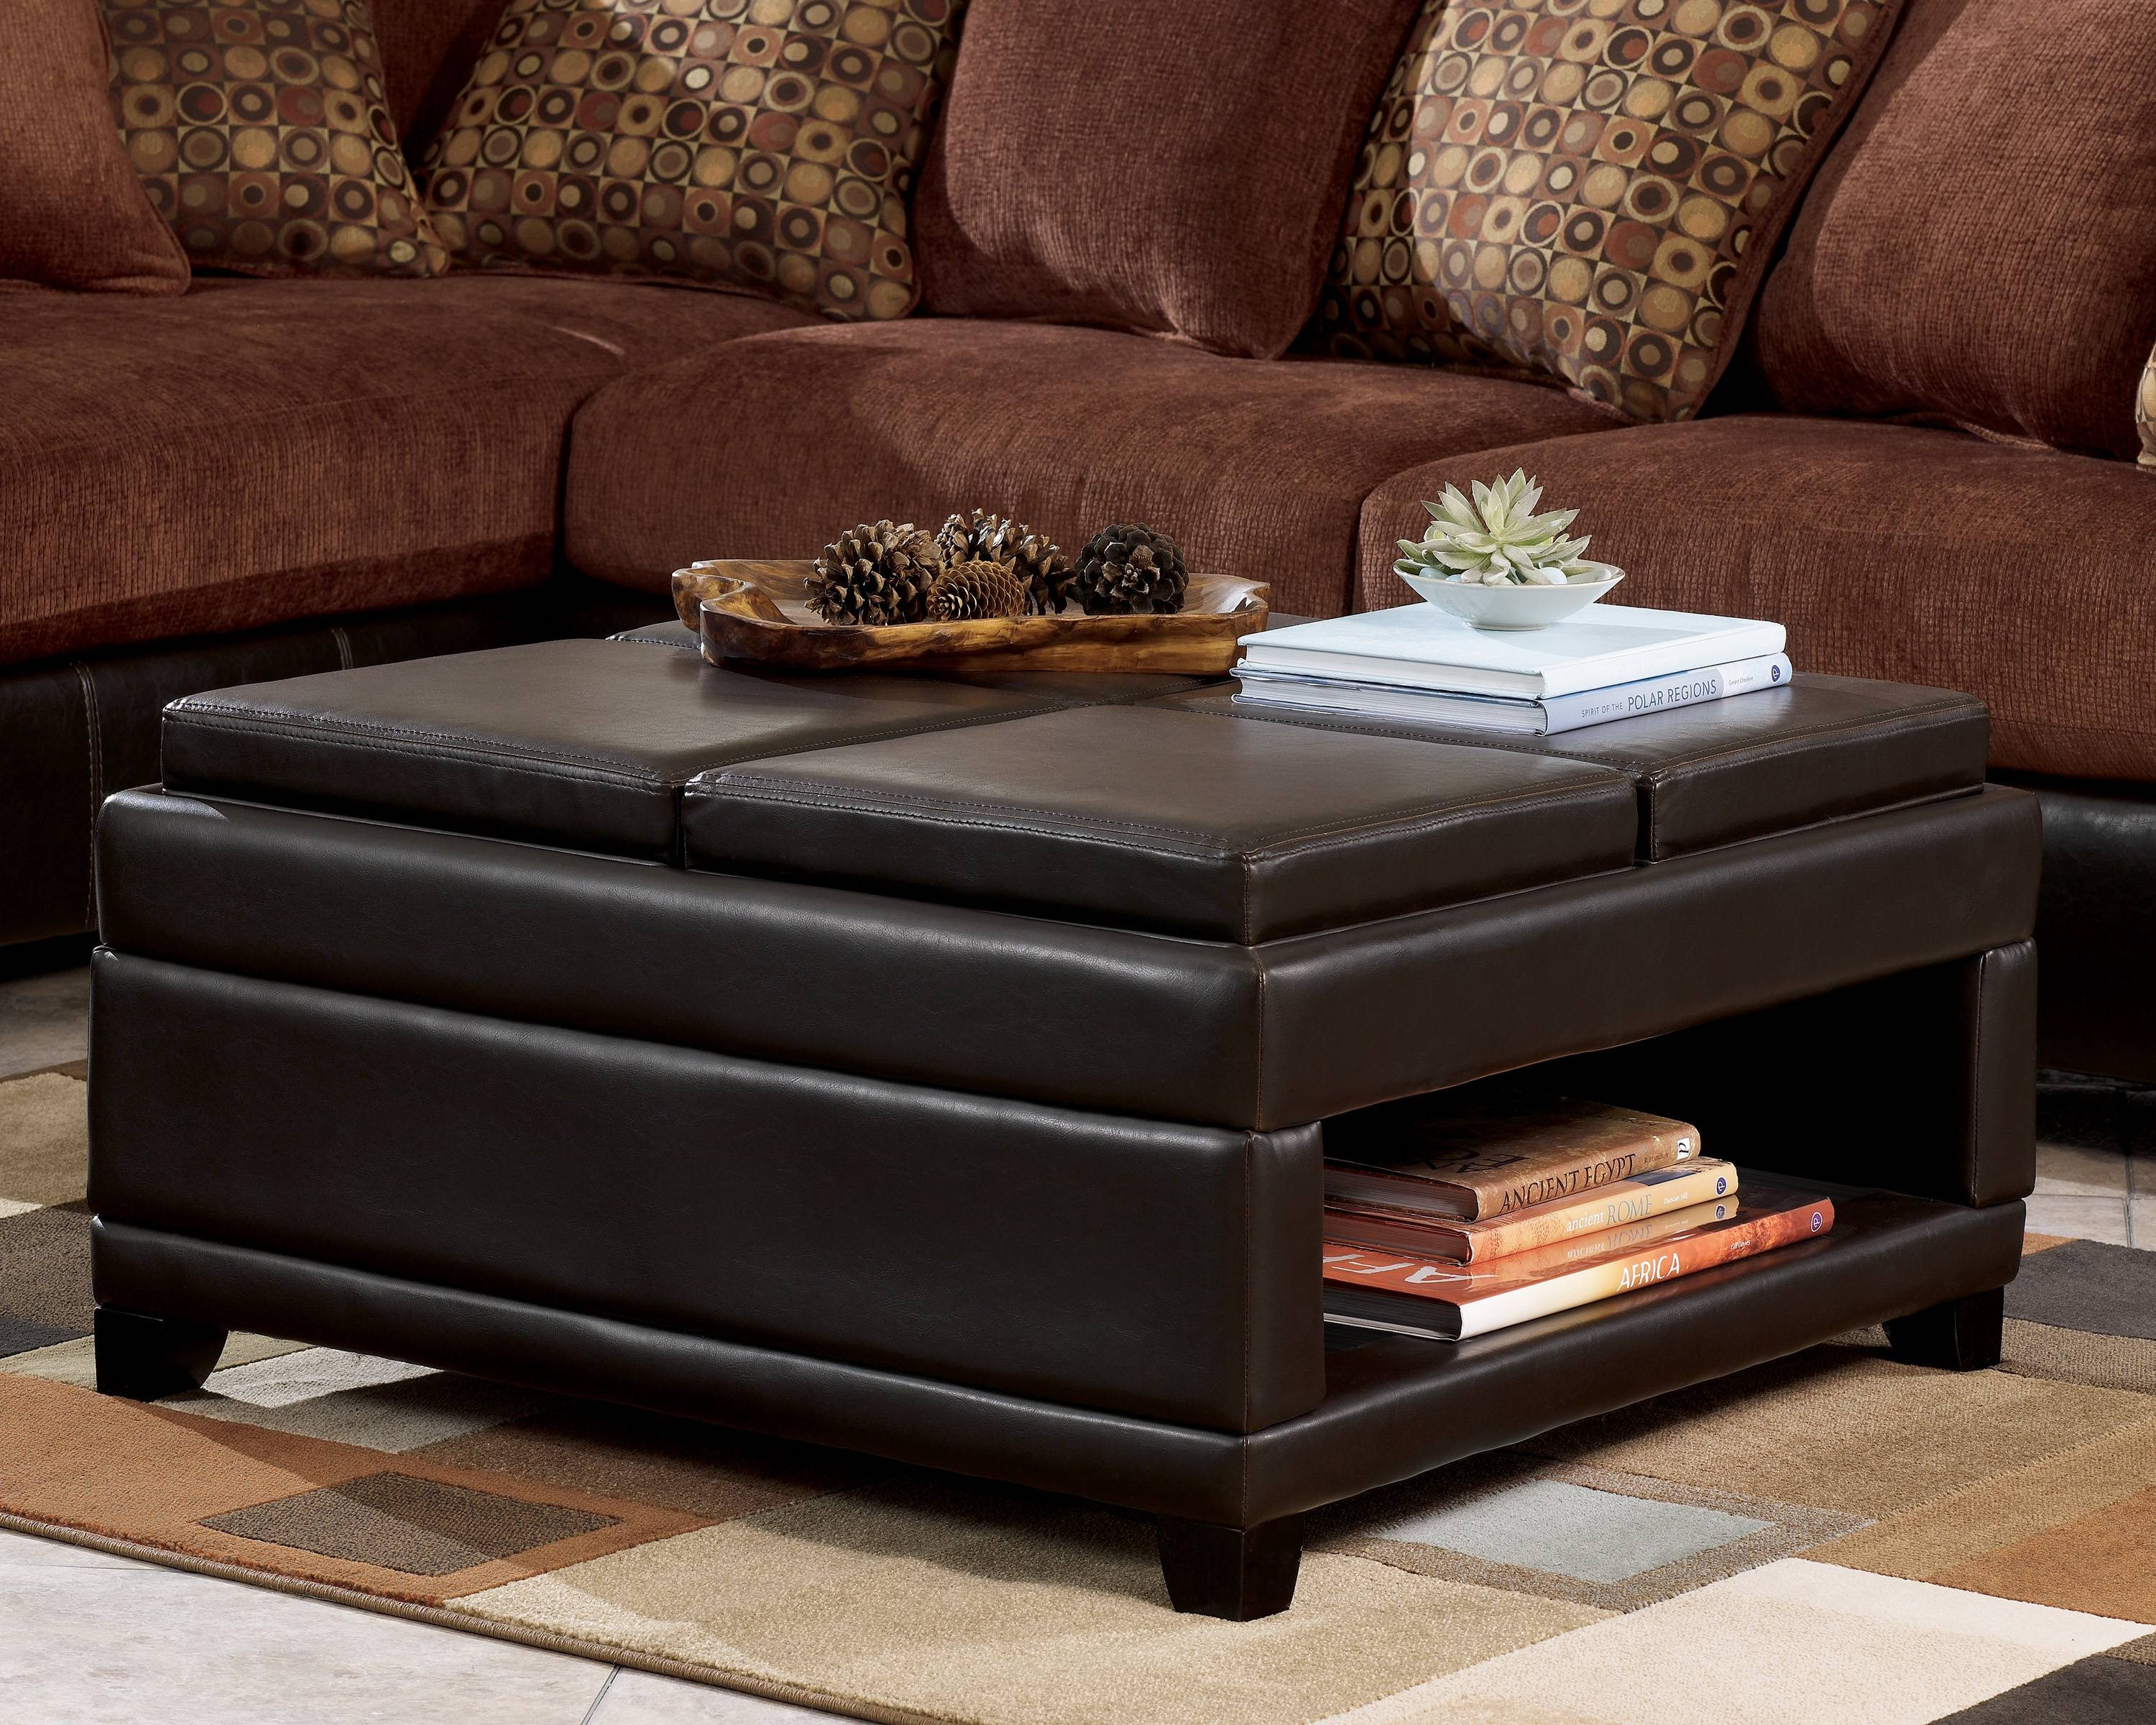 Coffee Table Popular Ottoman Storage Matching In Corbett Square Throughout Coffee Tables With Seating And Storage (View 2 of 30)